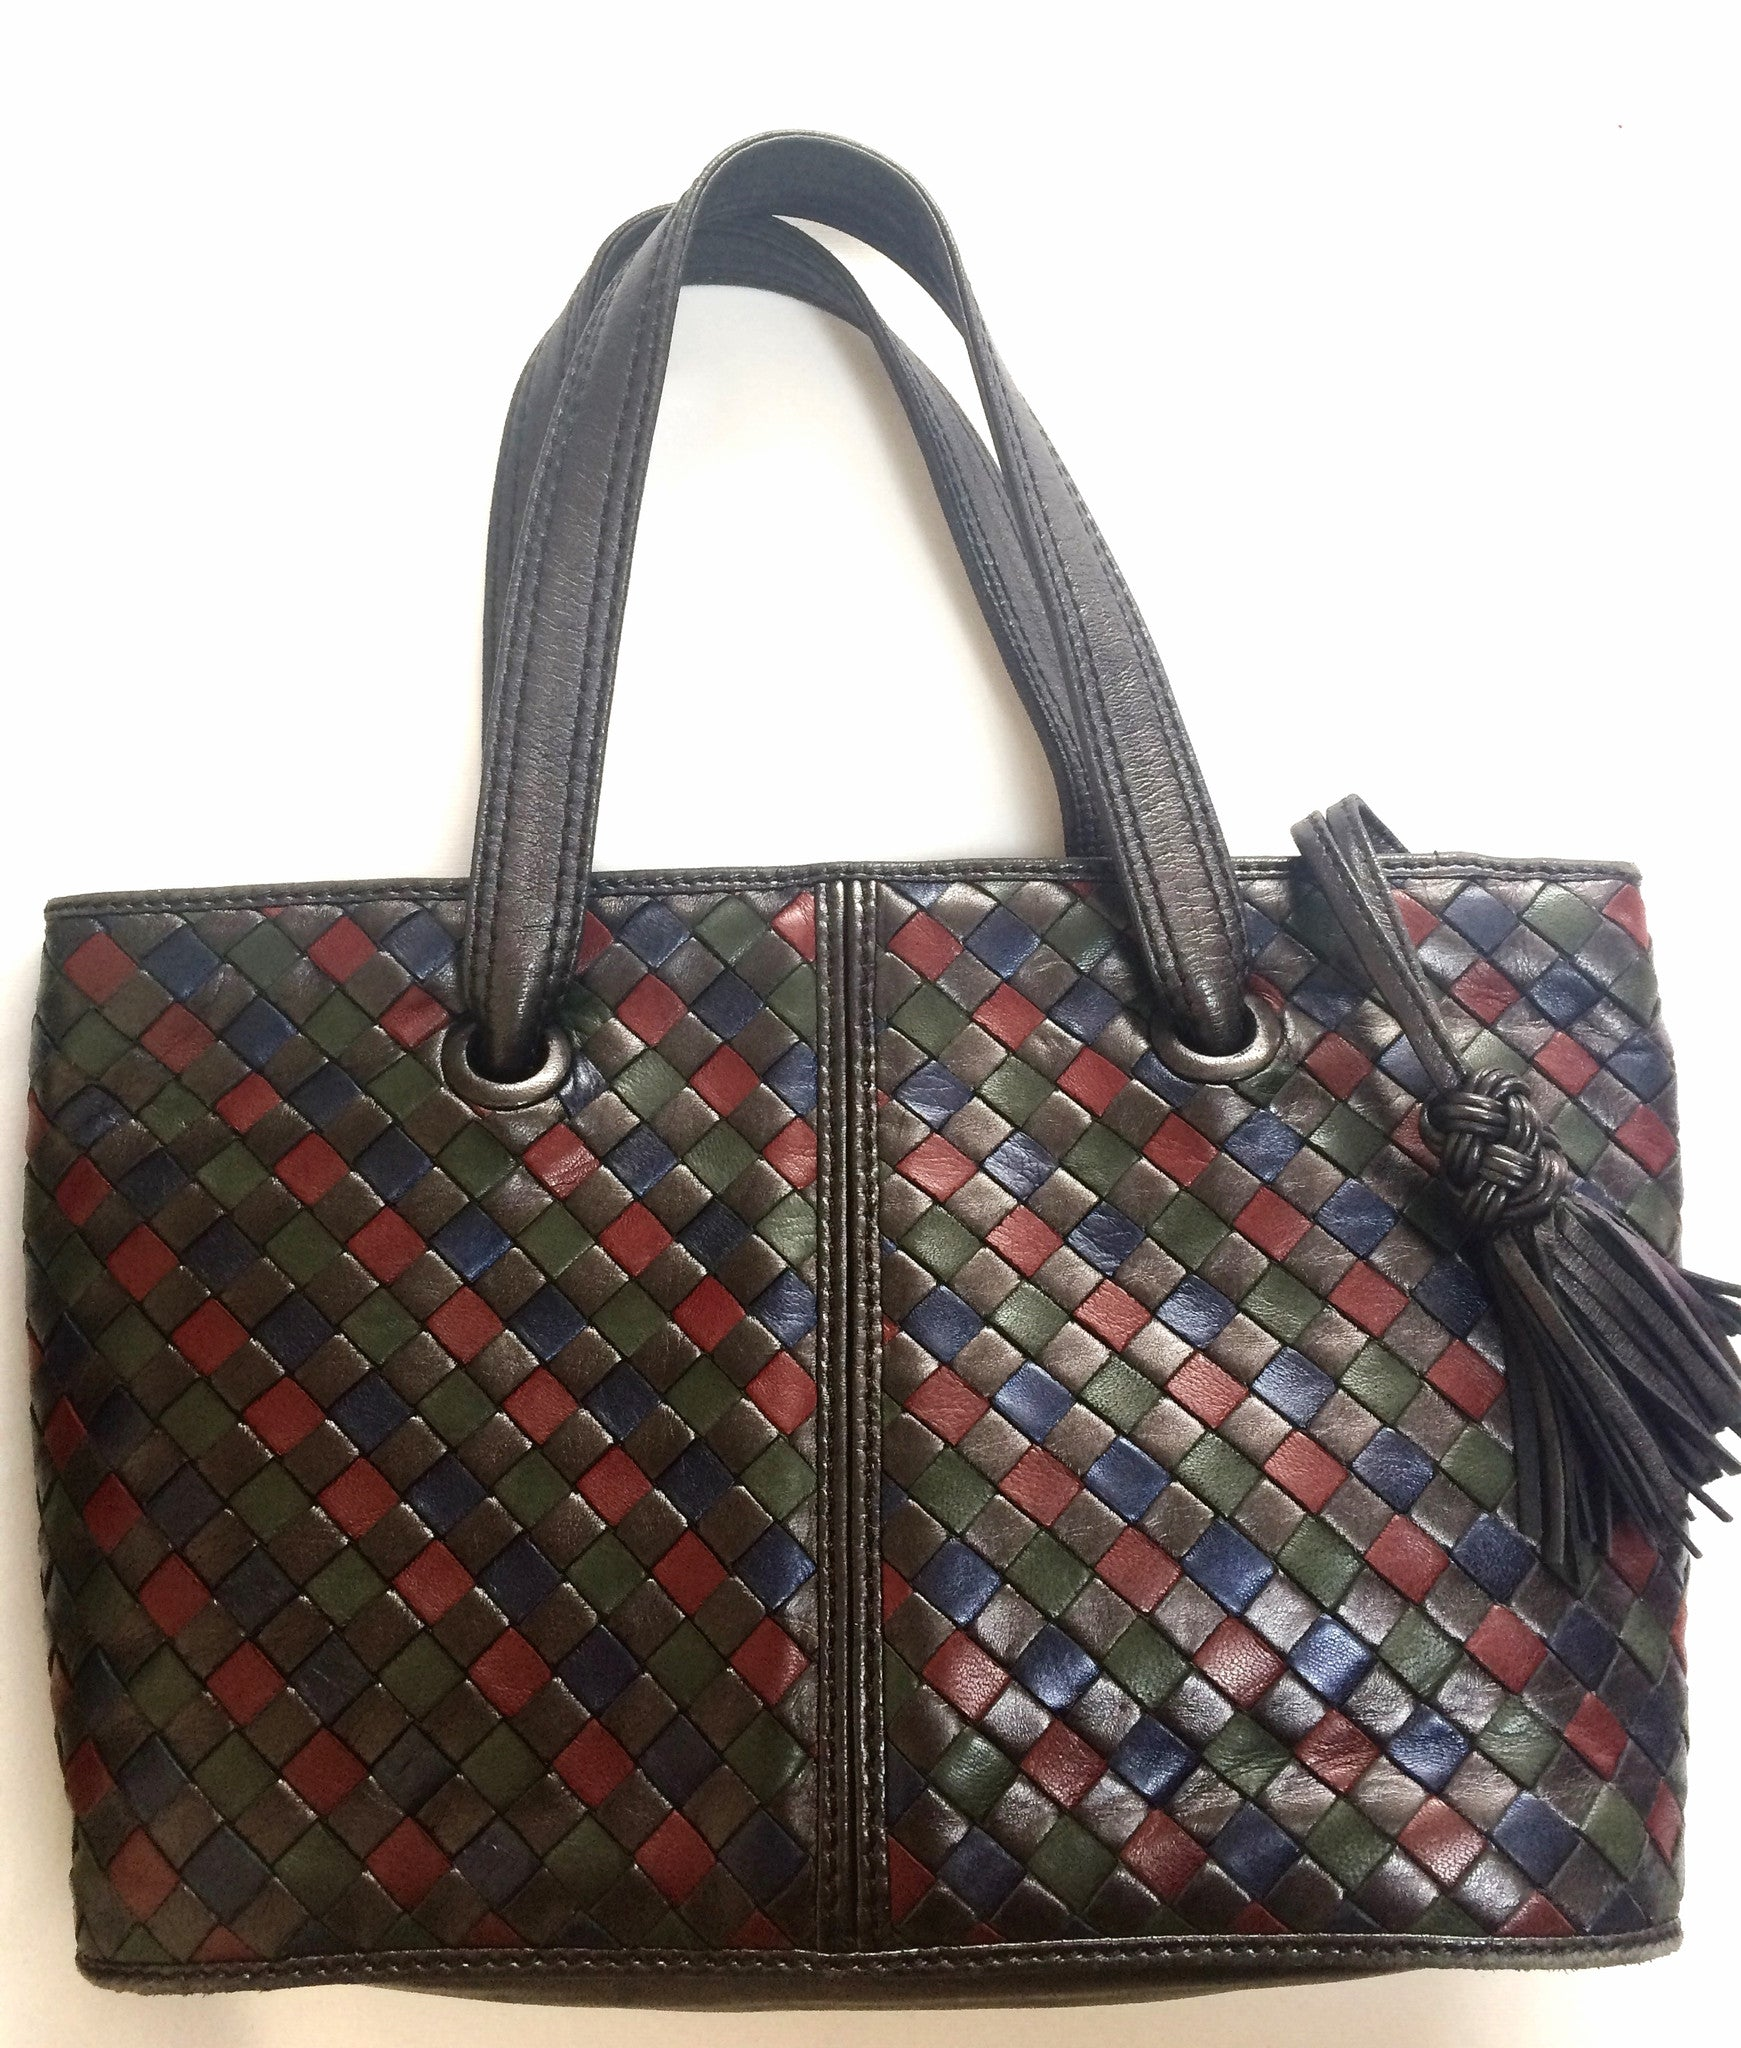 Vintage Bottega Veneta intrecciato woven leather tote bag in black, wine, brown, navy, and dark green lambskin intrecciato. Multicolor bag.